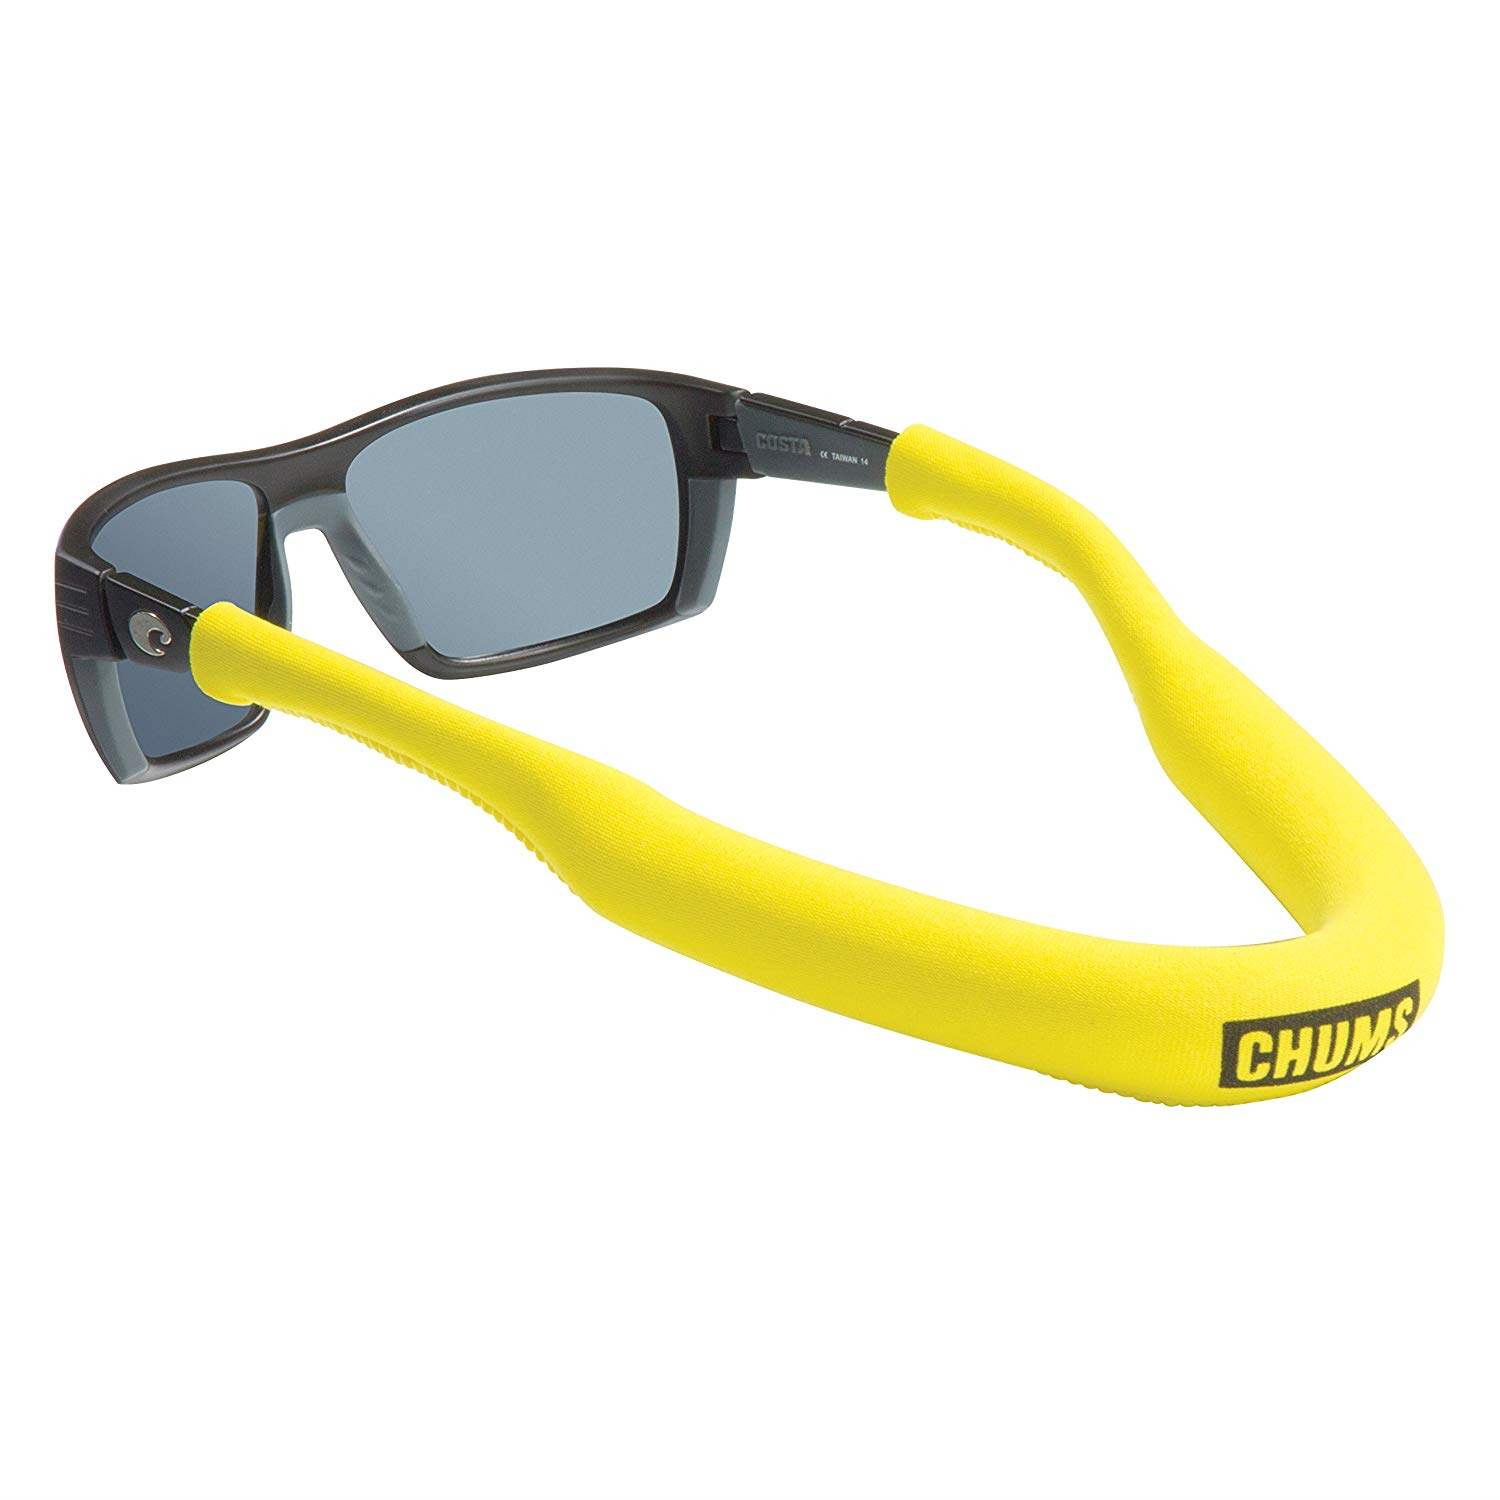 Antiskid glasses, sunglasses, buoyancy glasses with rope, swimming in summer, swimming in water, sun rope, water sports, seaside fixation